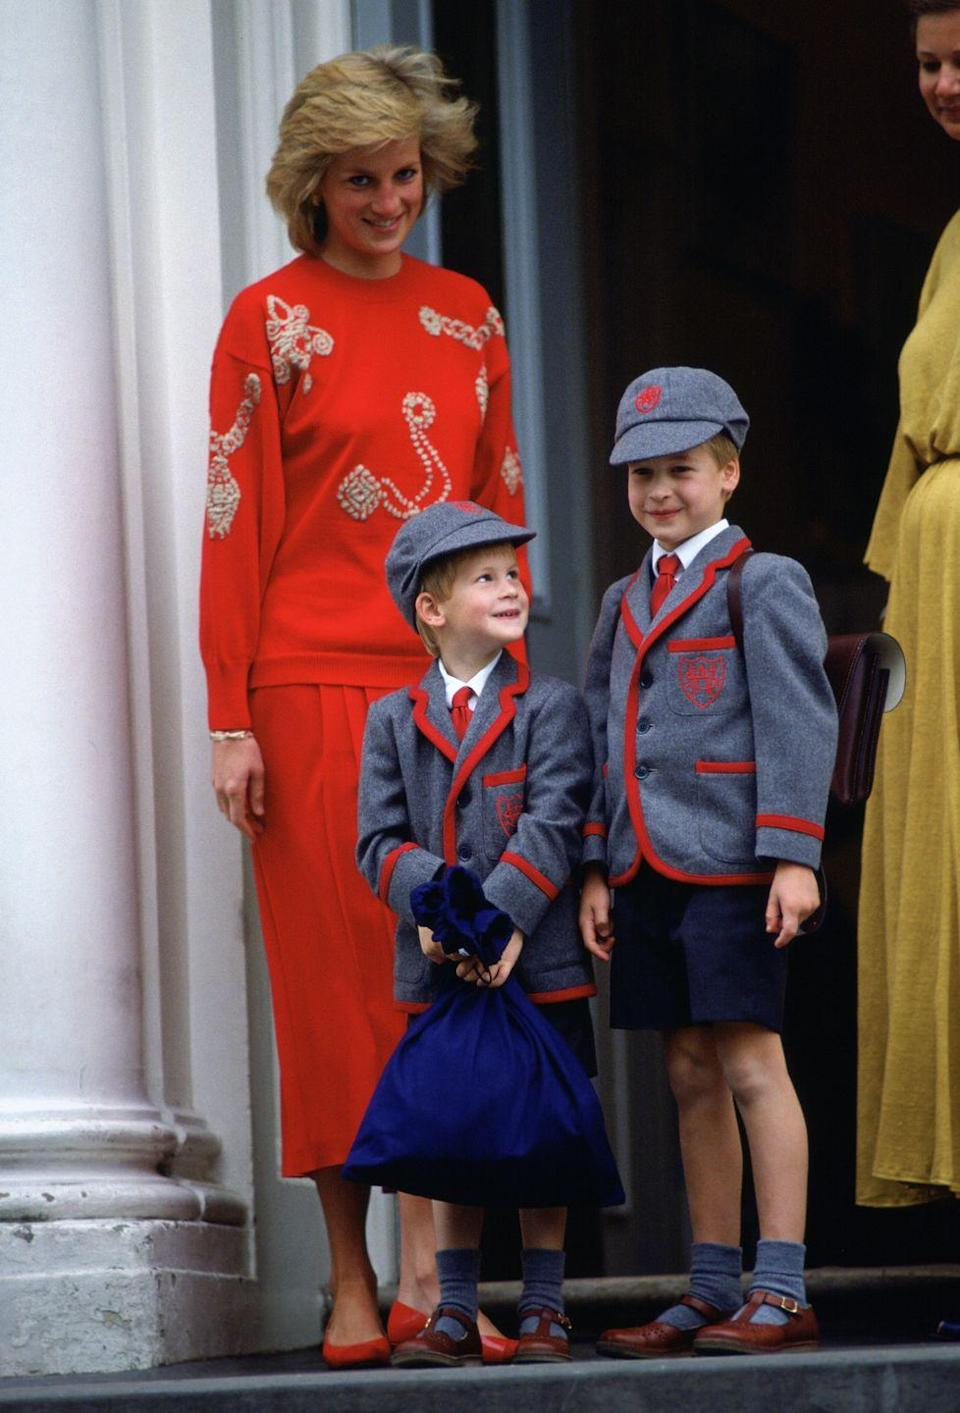 <p>Princess Diana accompanies her sons William and Harry to their first day at Wetherby School on September 12, 1989 in London, England. </p>